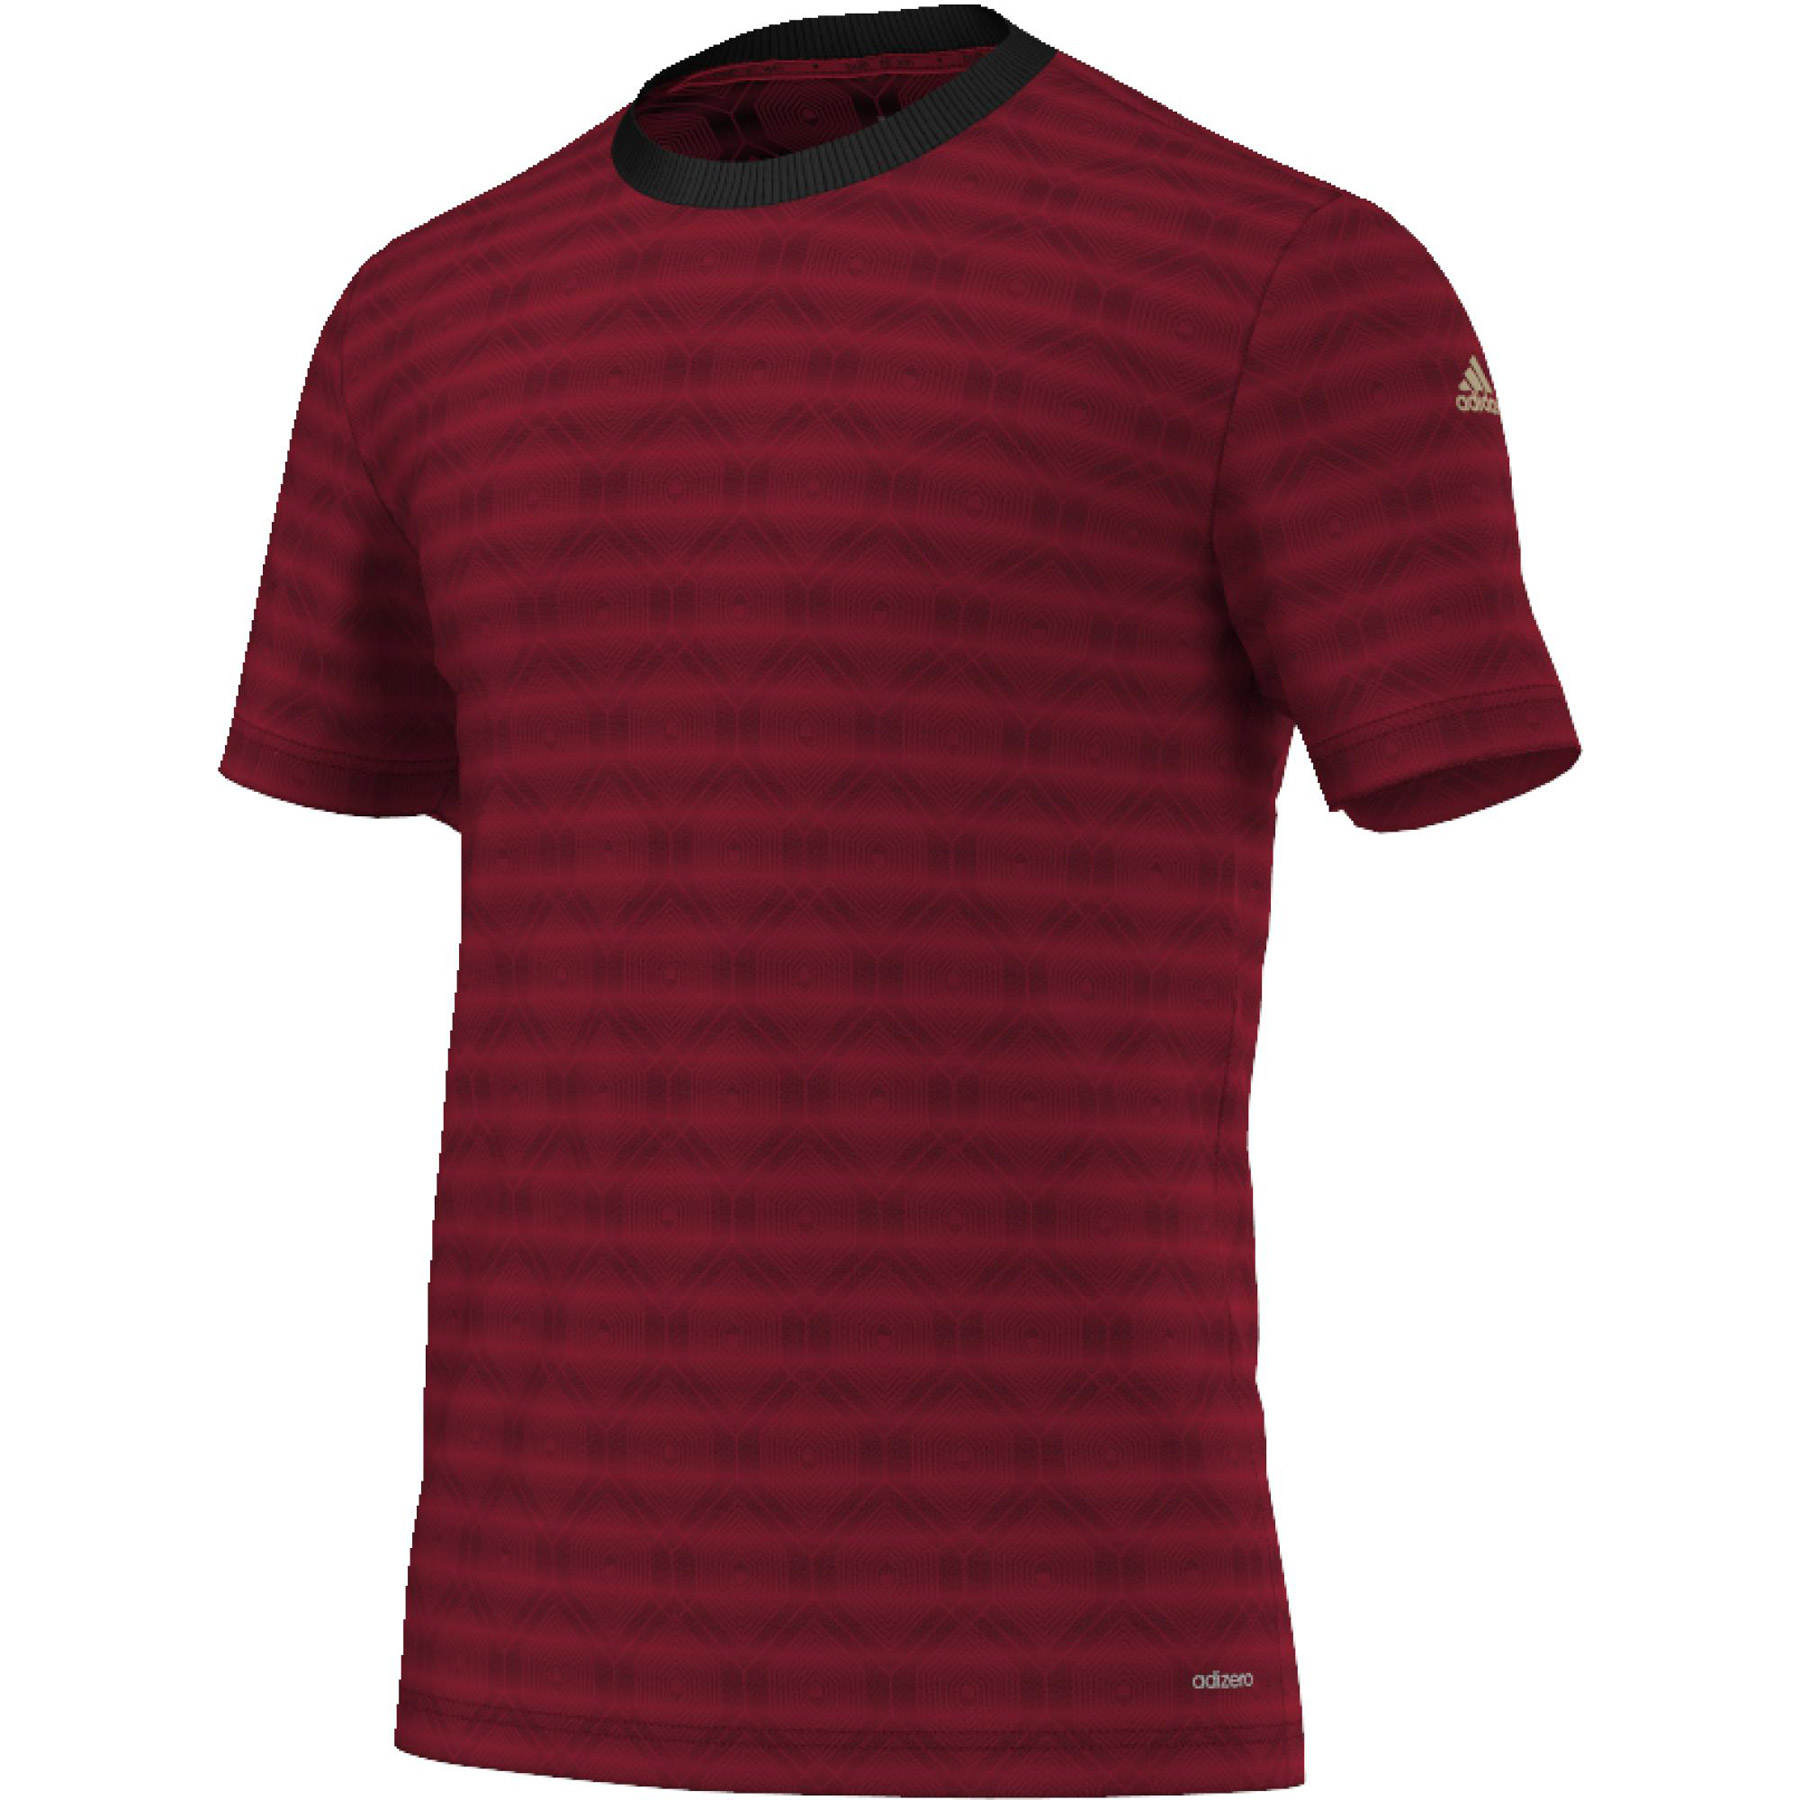 adidas Messi AZ TShirt Red